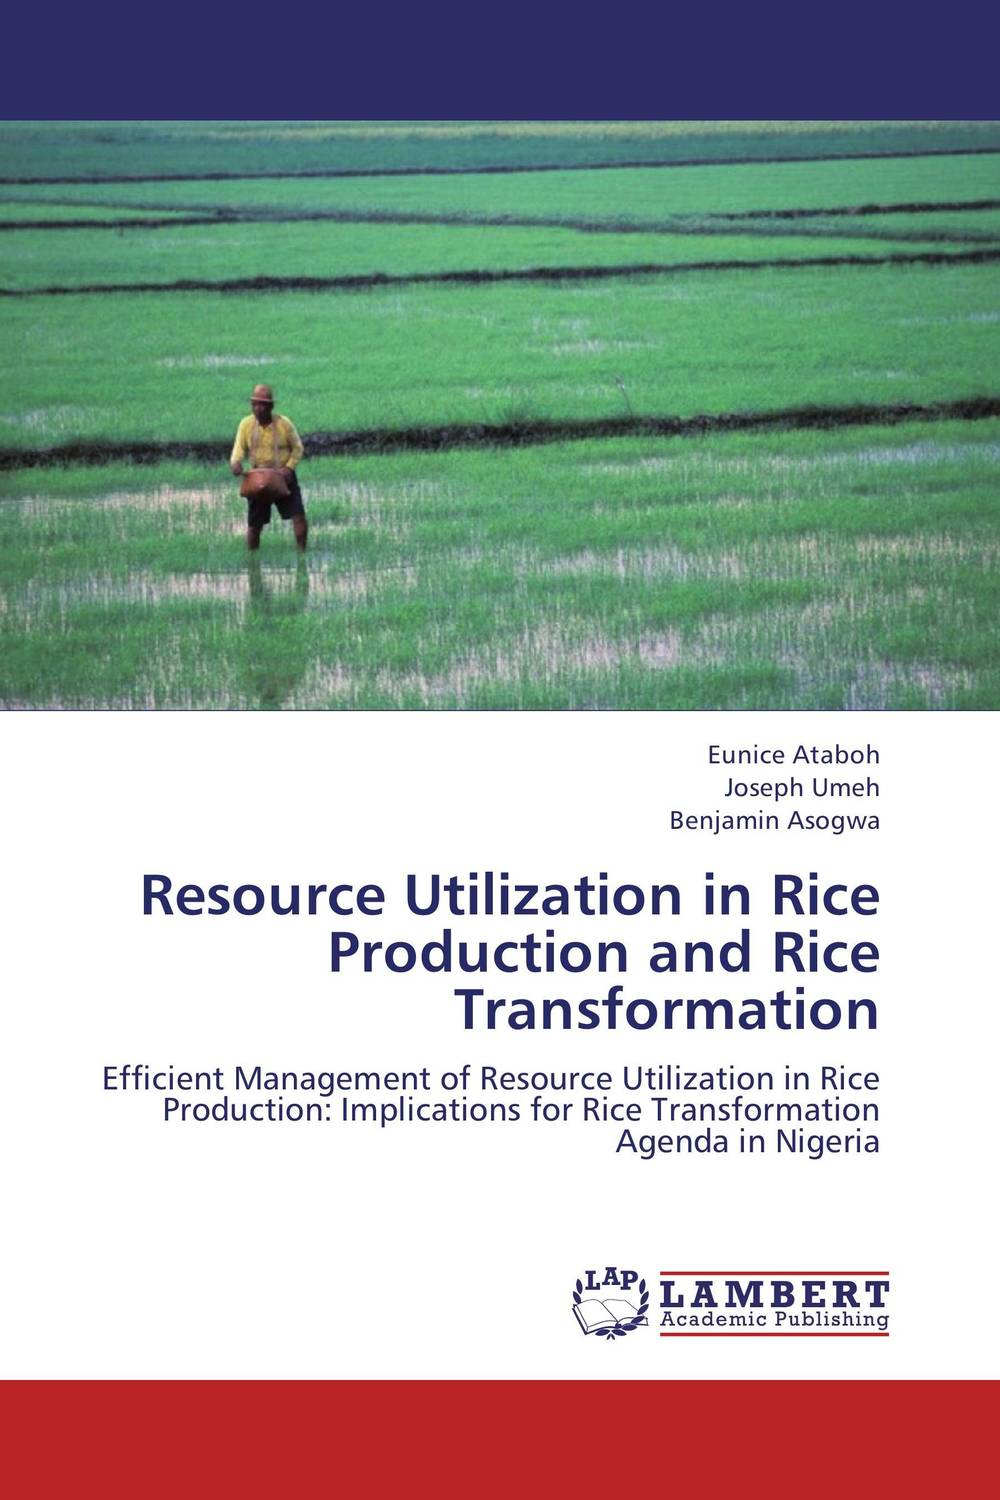 Resource Utilization in Rice Production and Rice Transformation k r k naidu a v ramana and r veeraraghavaiah common vetch management in rice fallow blackgram